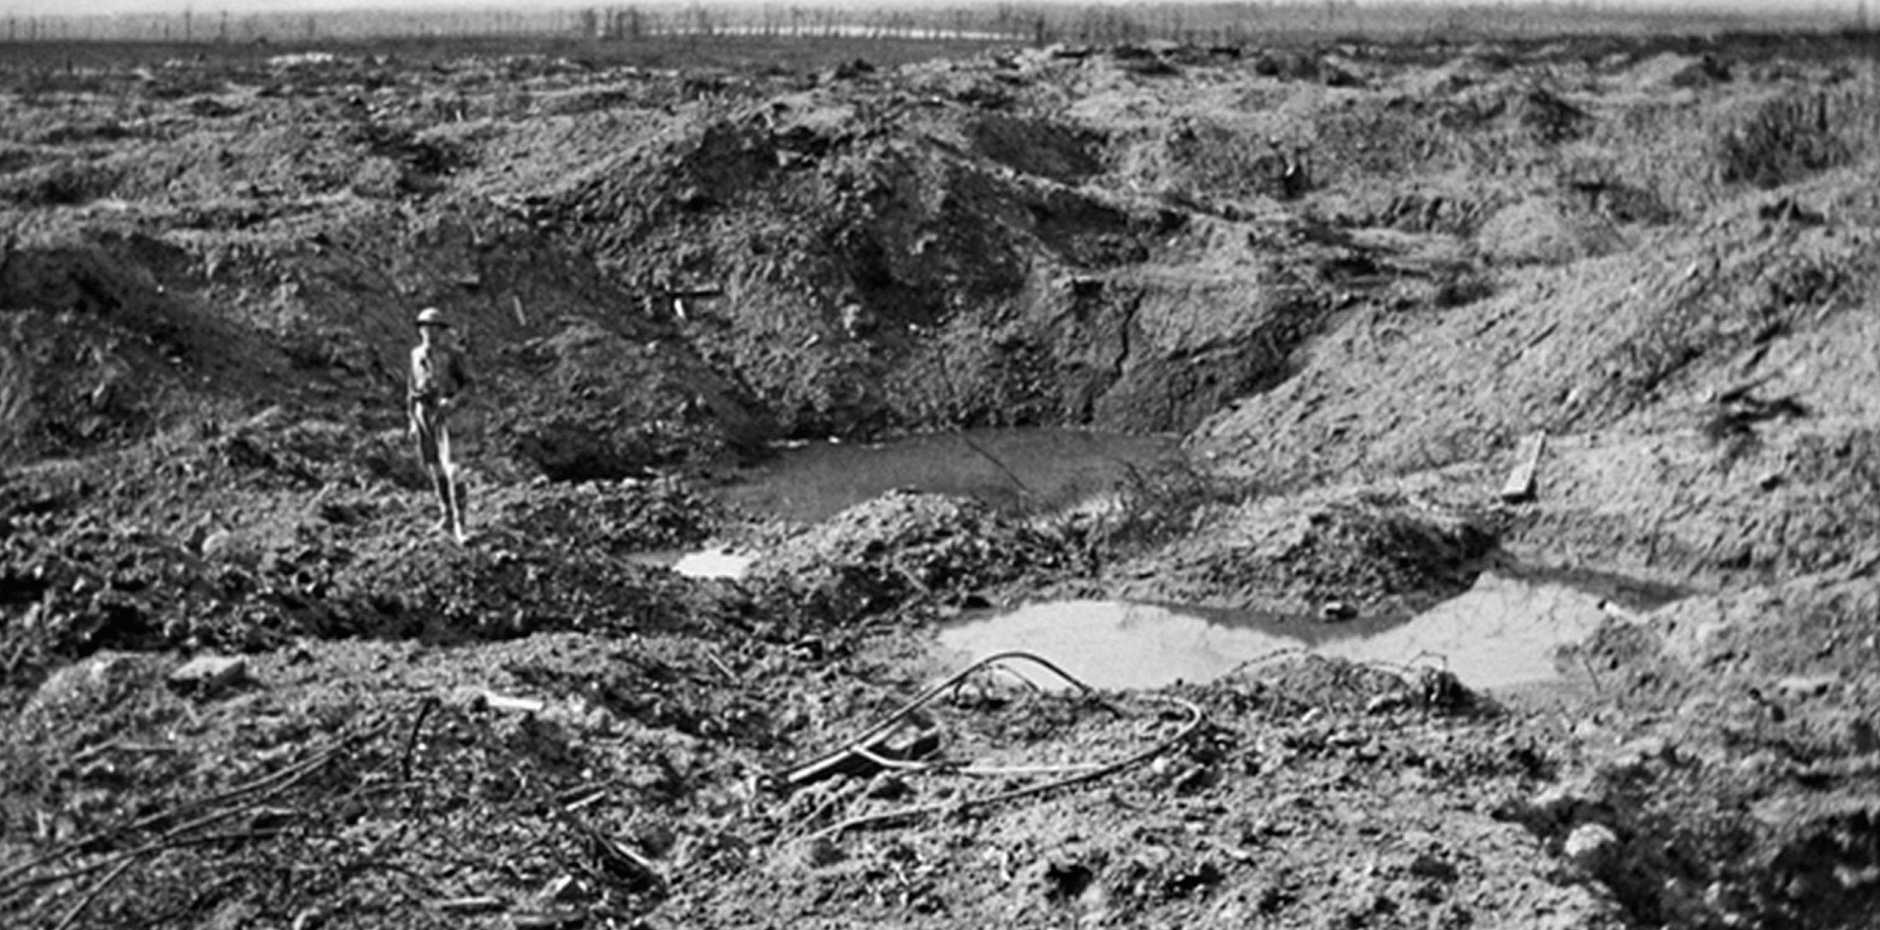 SOMME: Looking from an old crater on the north side of Hill 60, over the shell pitted ground. Photo Courtesy the Australian War Memorial.